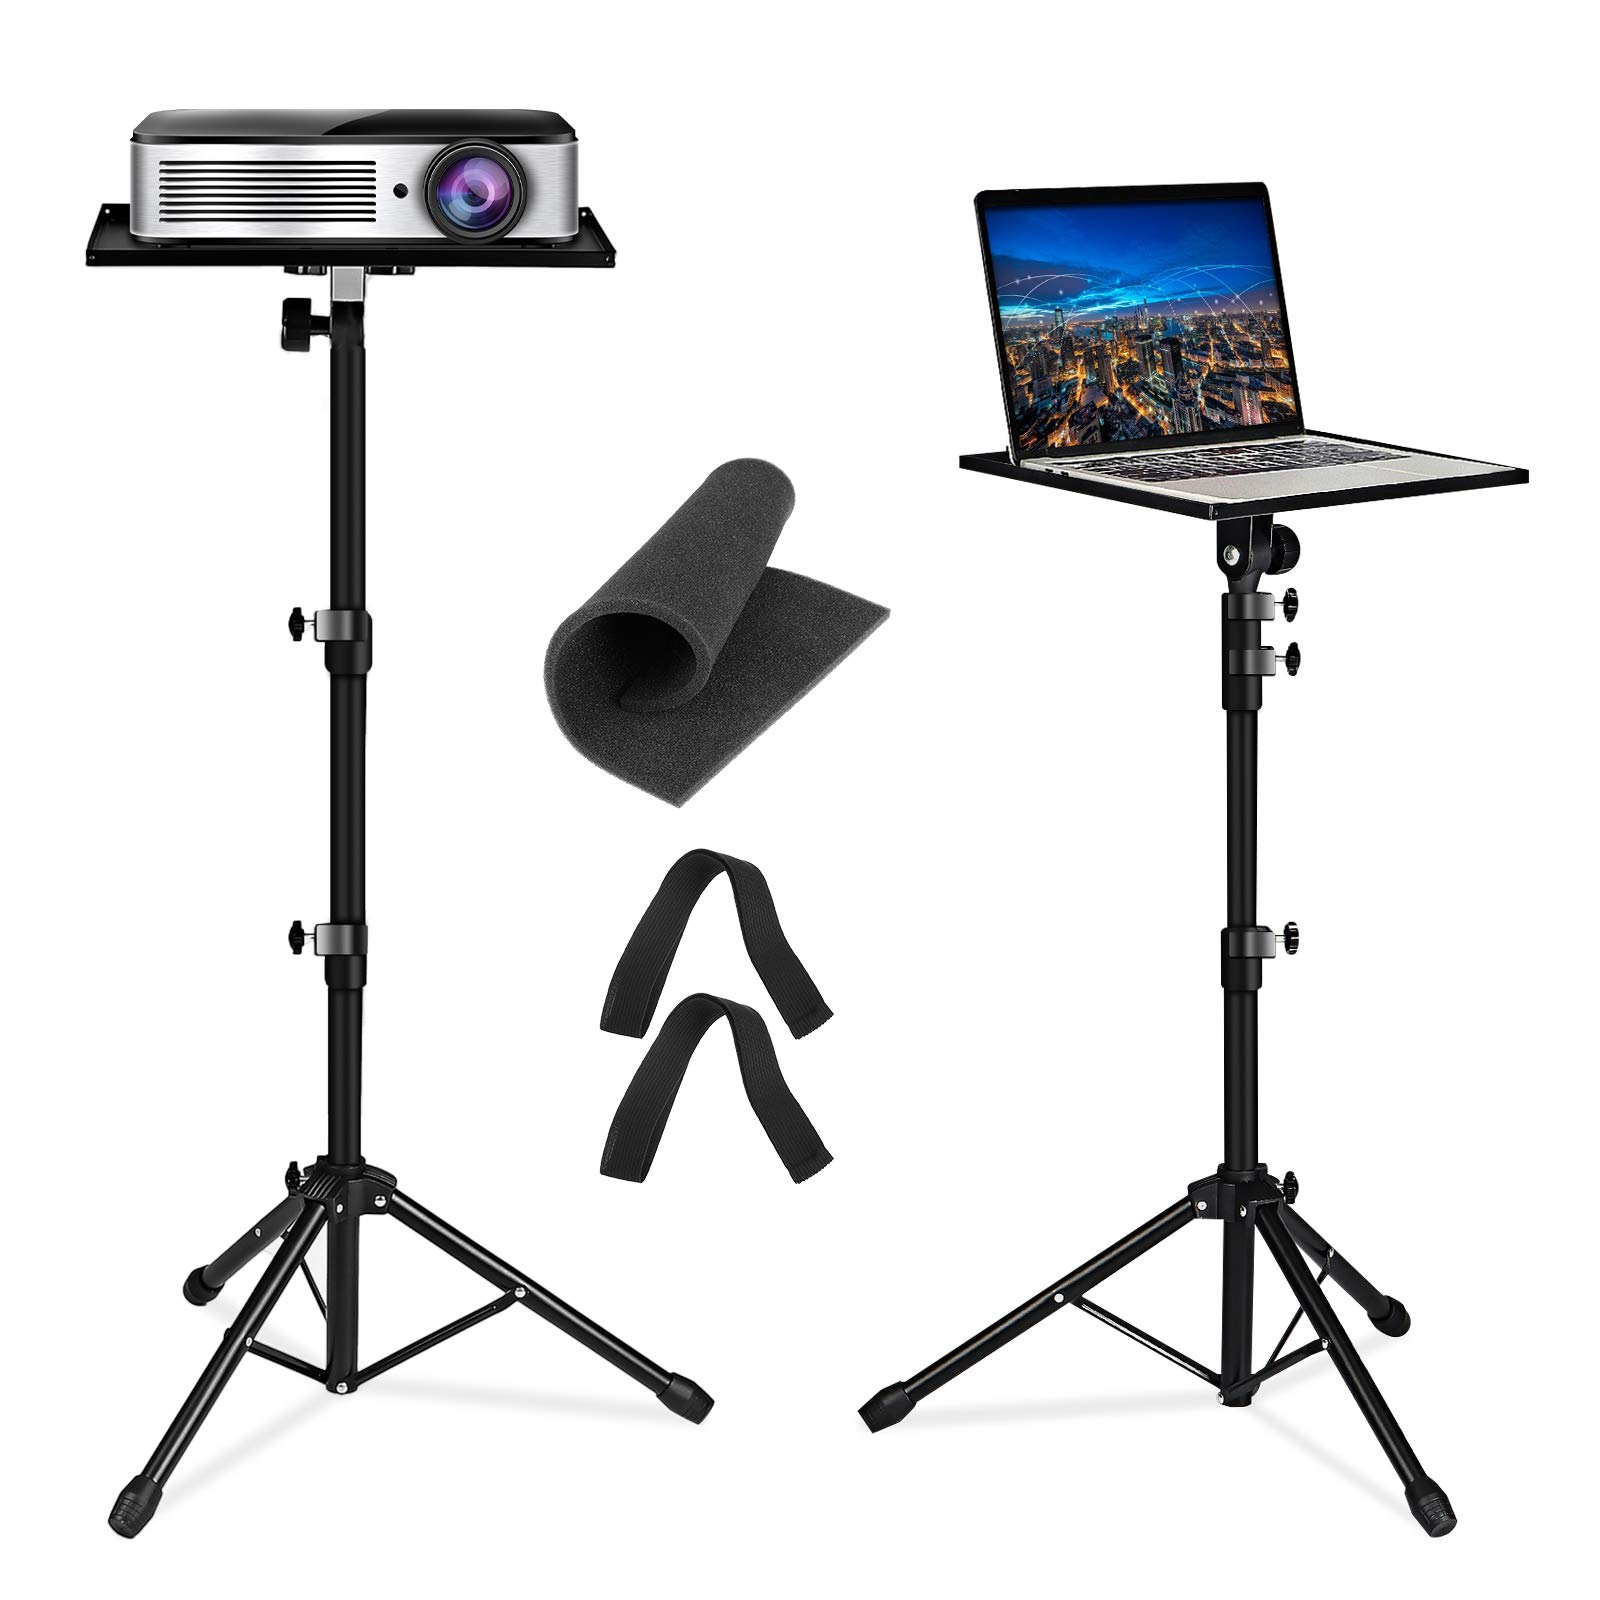 Projector Tripod Stand, NASUM Universal Laptop Tripod Adjustable Height 23 to 63 Inch Projector stand Detachable Computer DJ Equipment Stand Folding Laptop Floor Stand for Stage, Studio, Home & Office